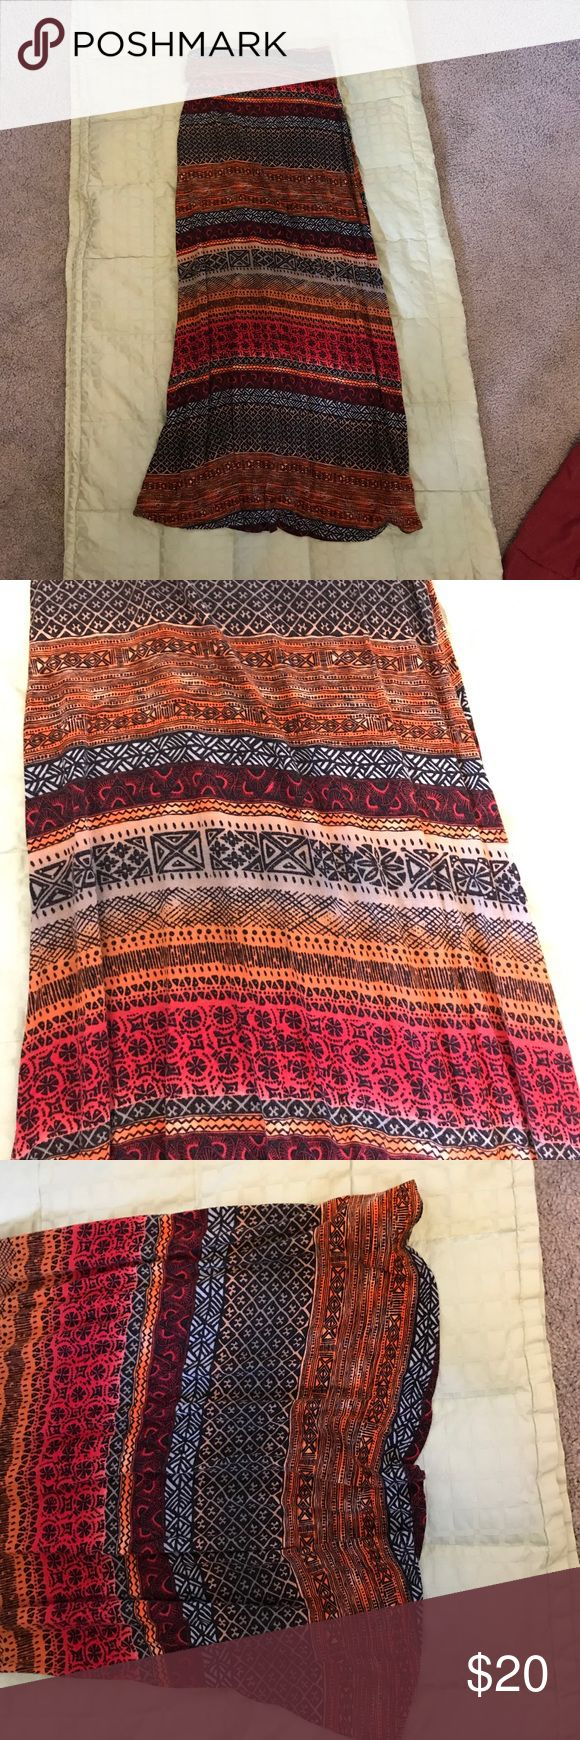 F21 Maxi Skirt (Pattern) Forever 21 Maxi skirt with fun orange/red/tan/black patterns, super comfortable, Size Small Forever 21 Skirts Maxi